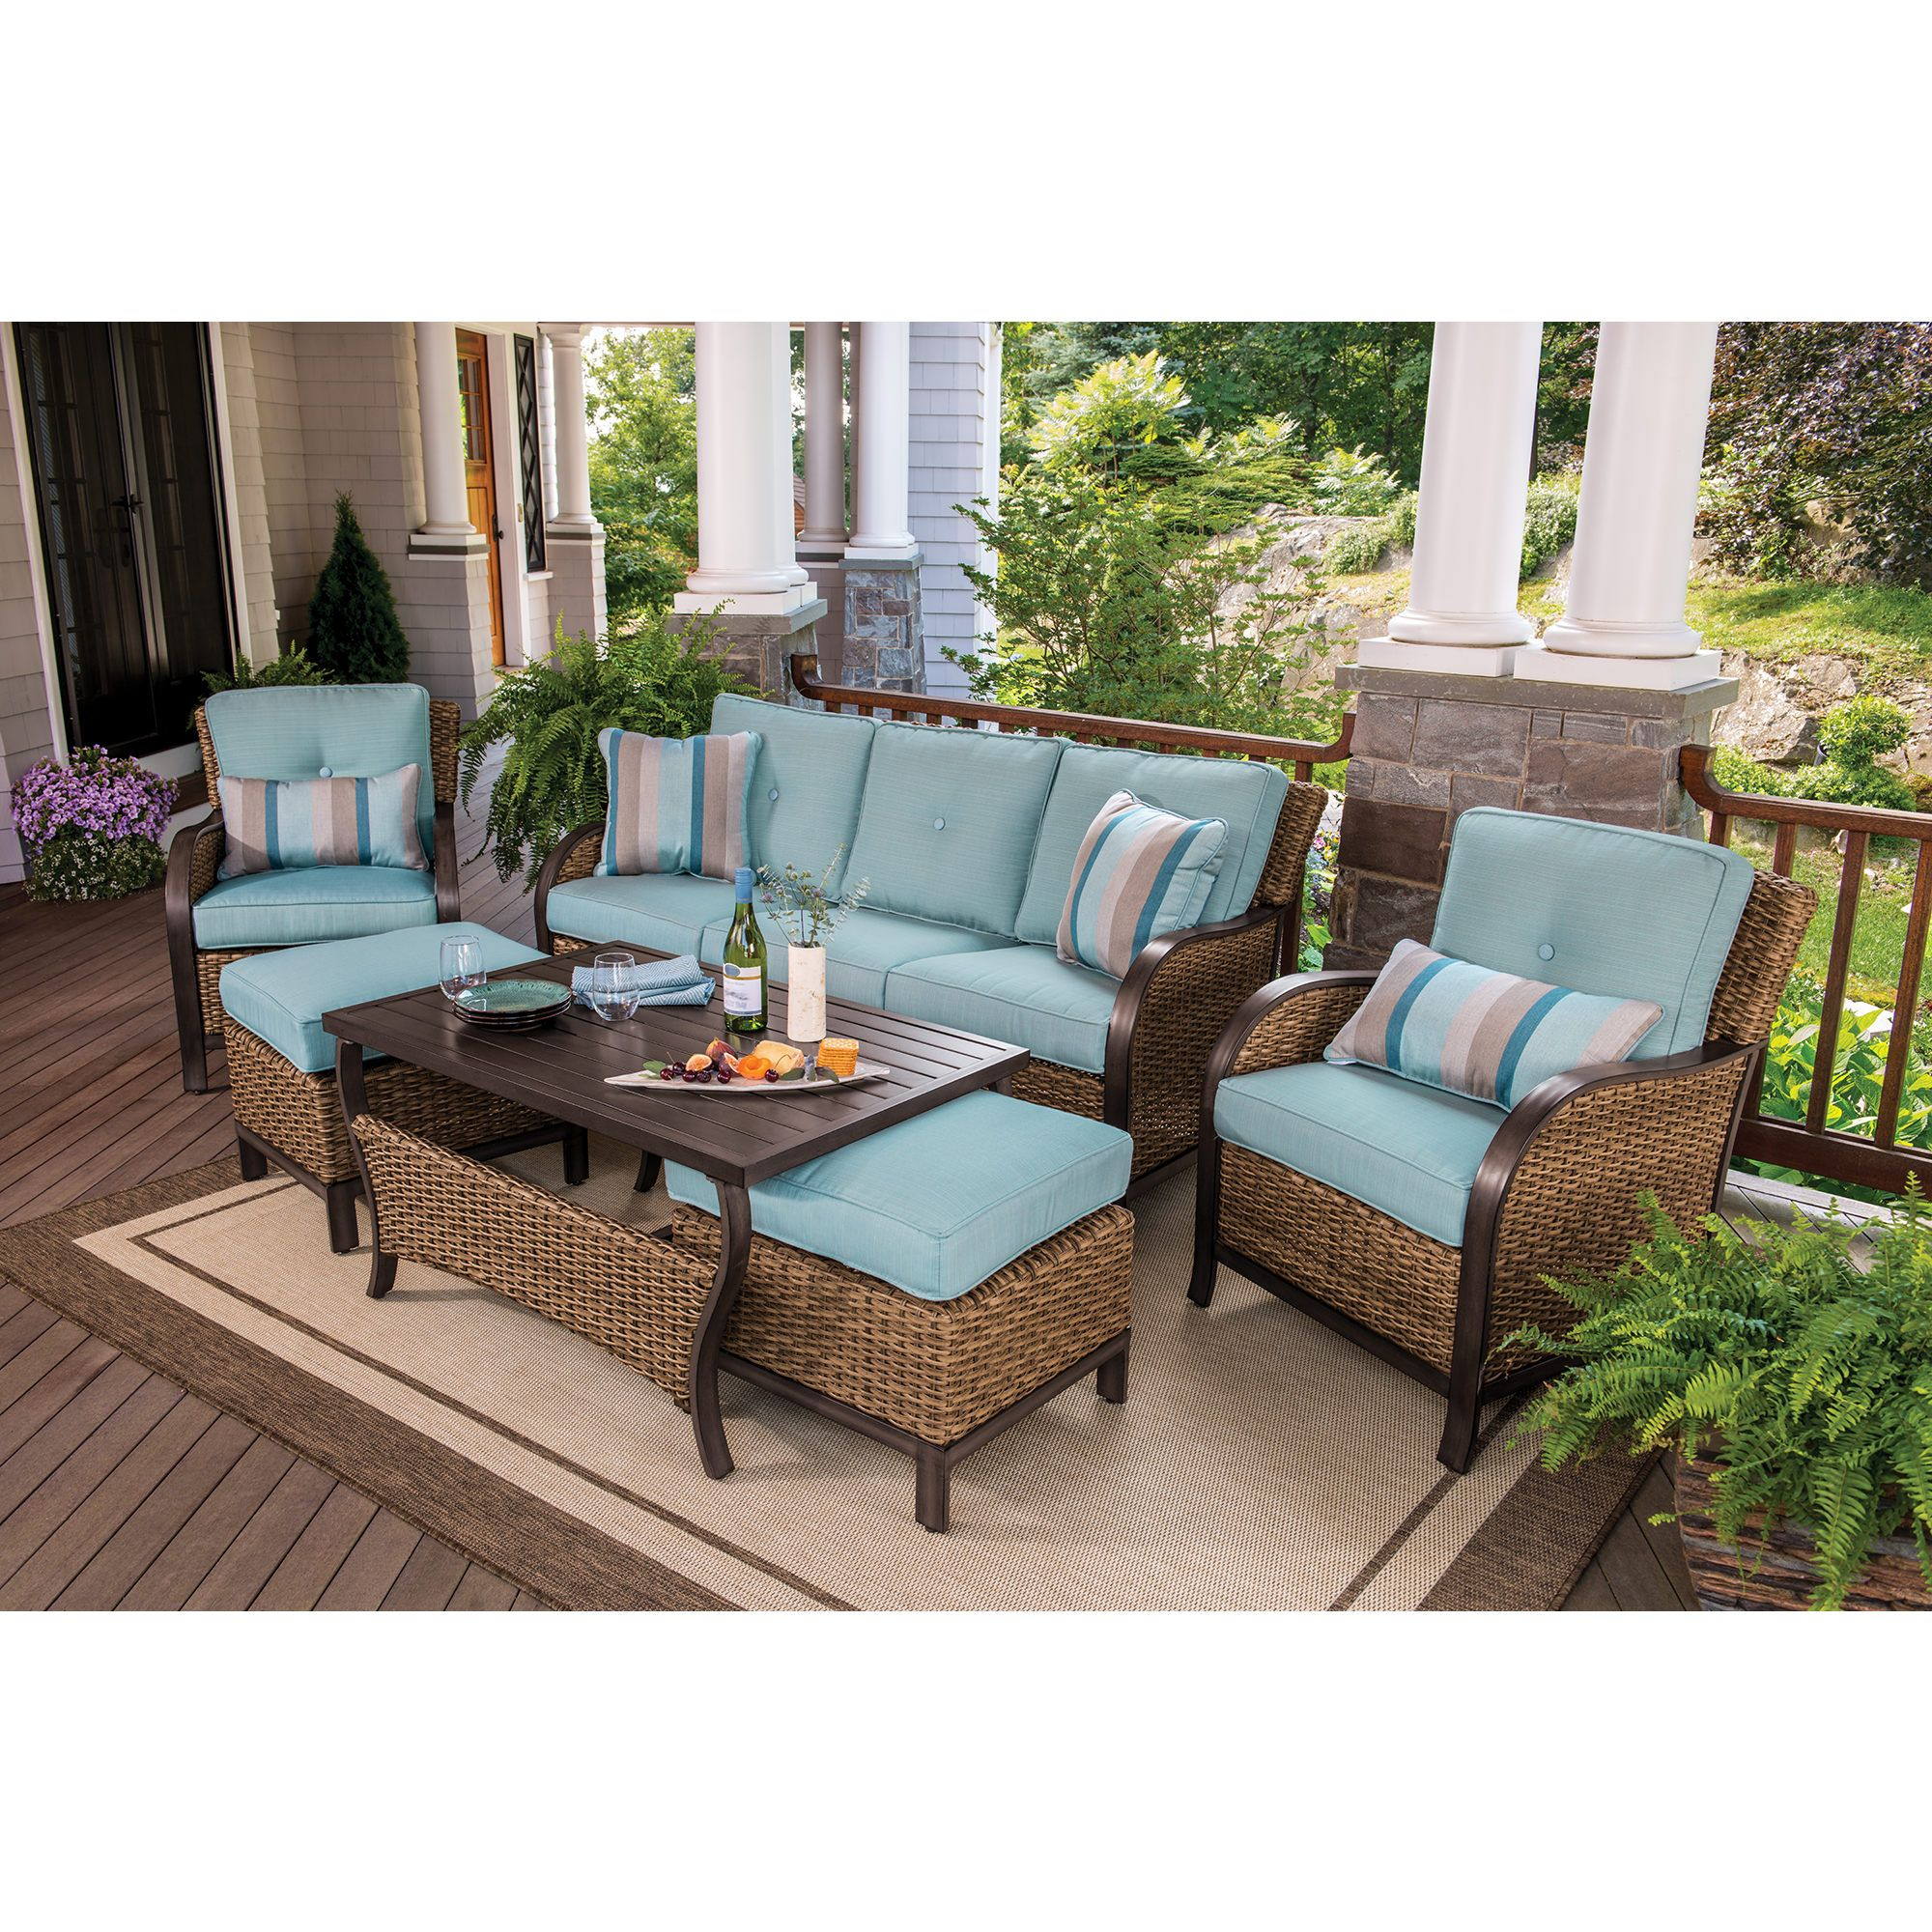 Berkley Jensen Nantucket 6-piece Wicker Patio Set - Bjs